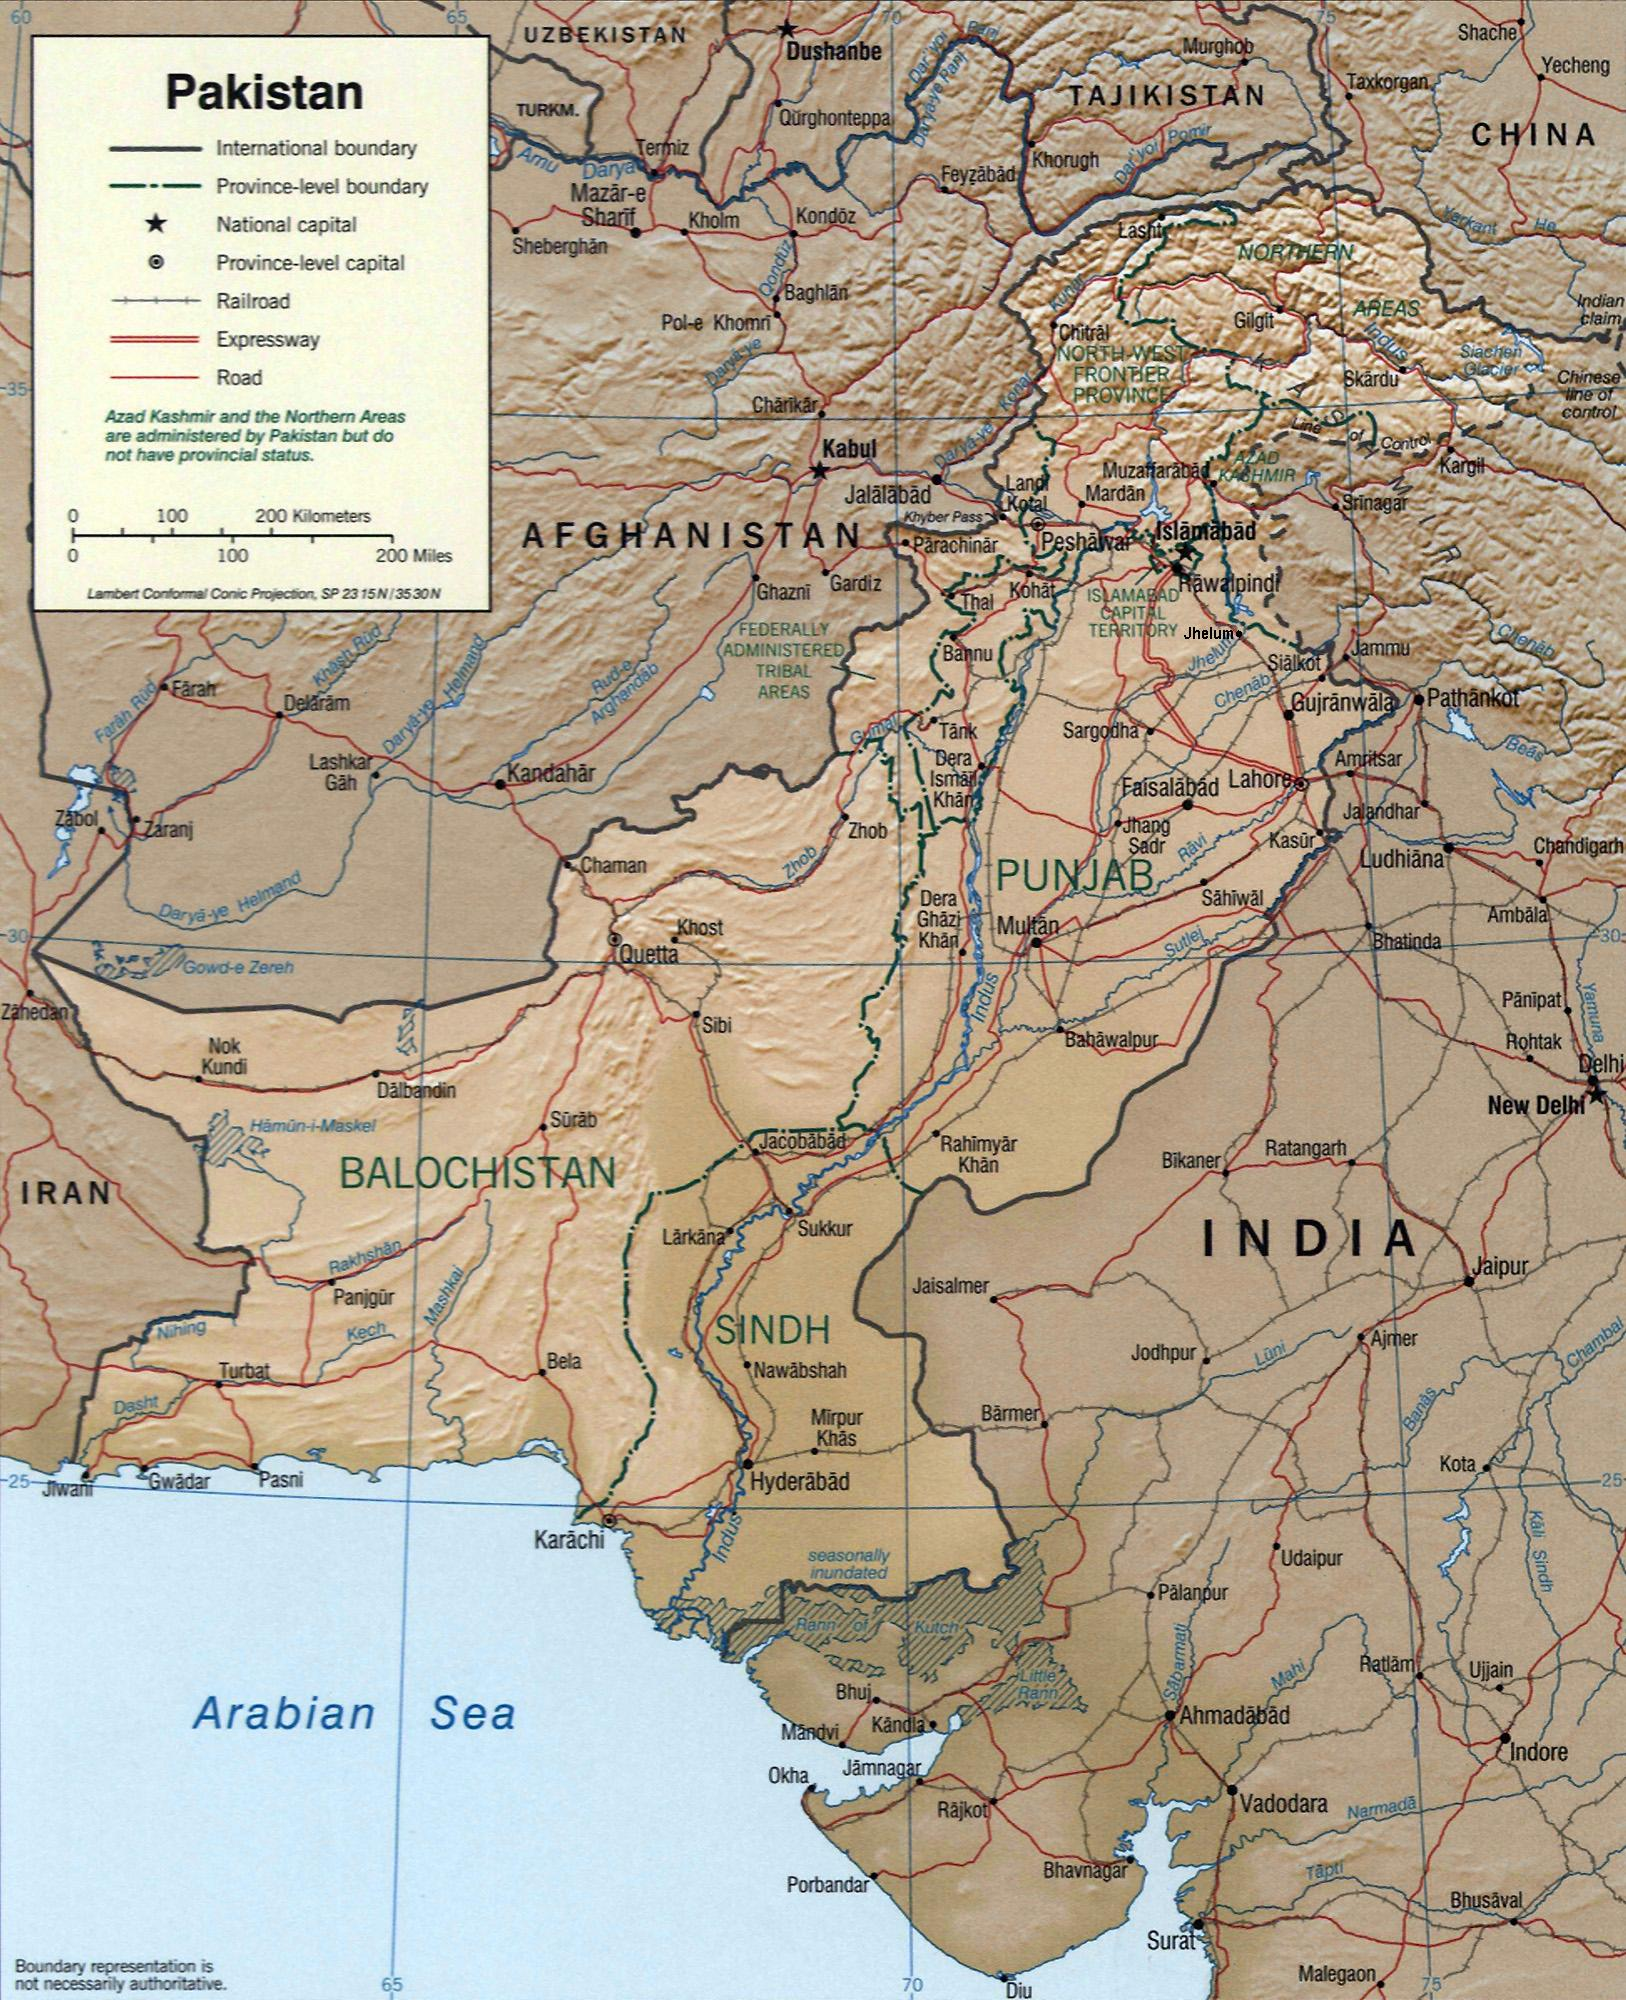 Pakistan 2002 CIA mapjpg Atlas of Pakistan